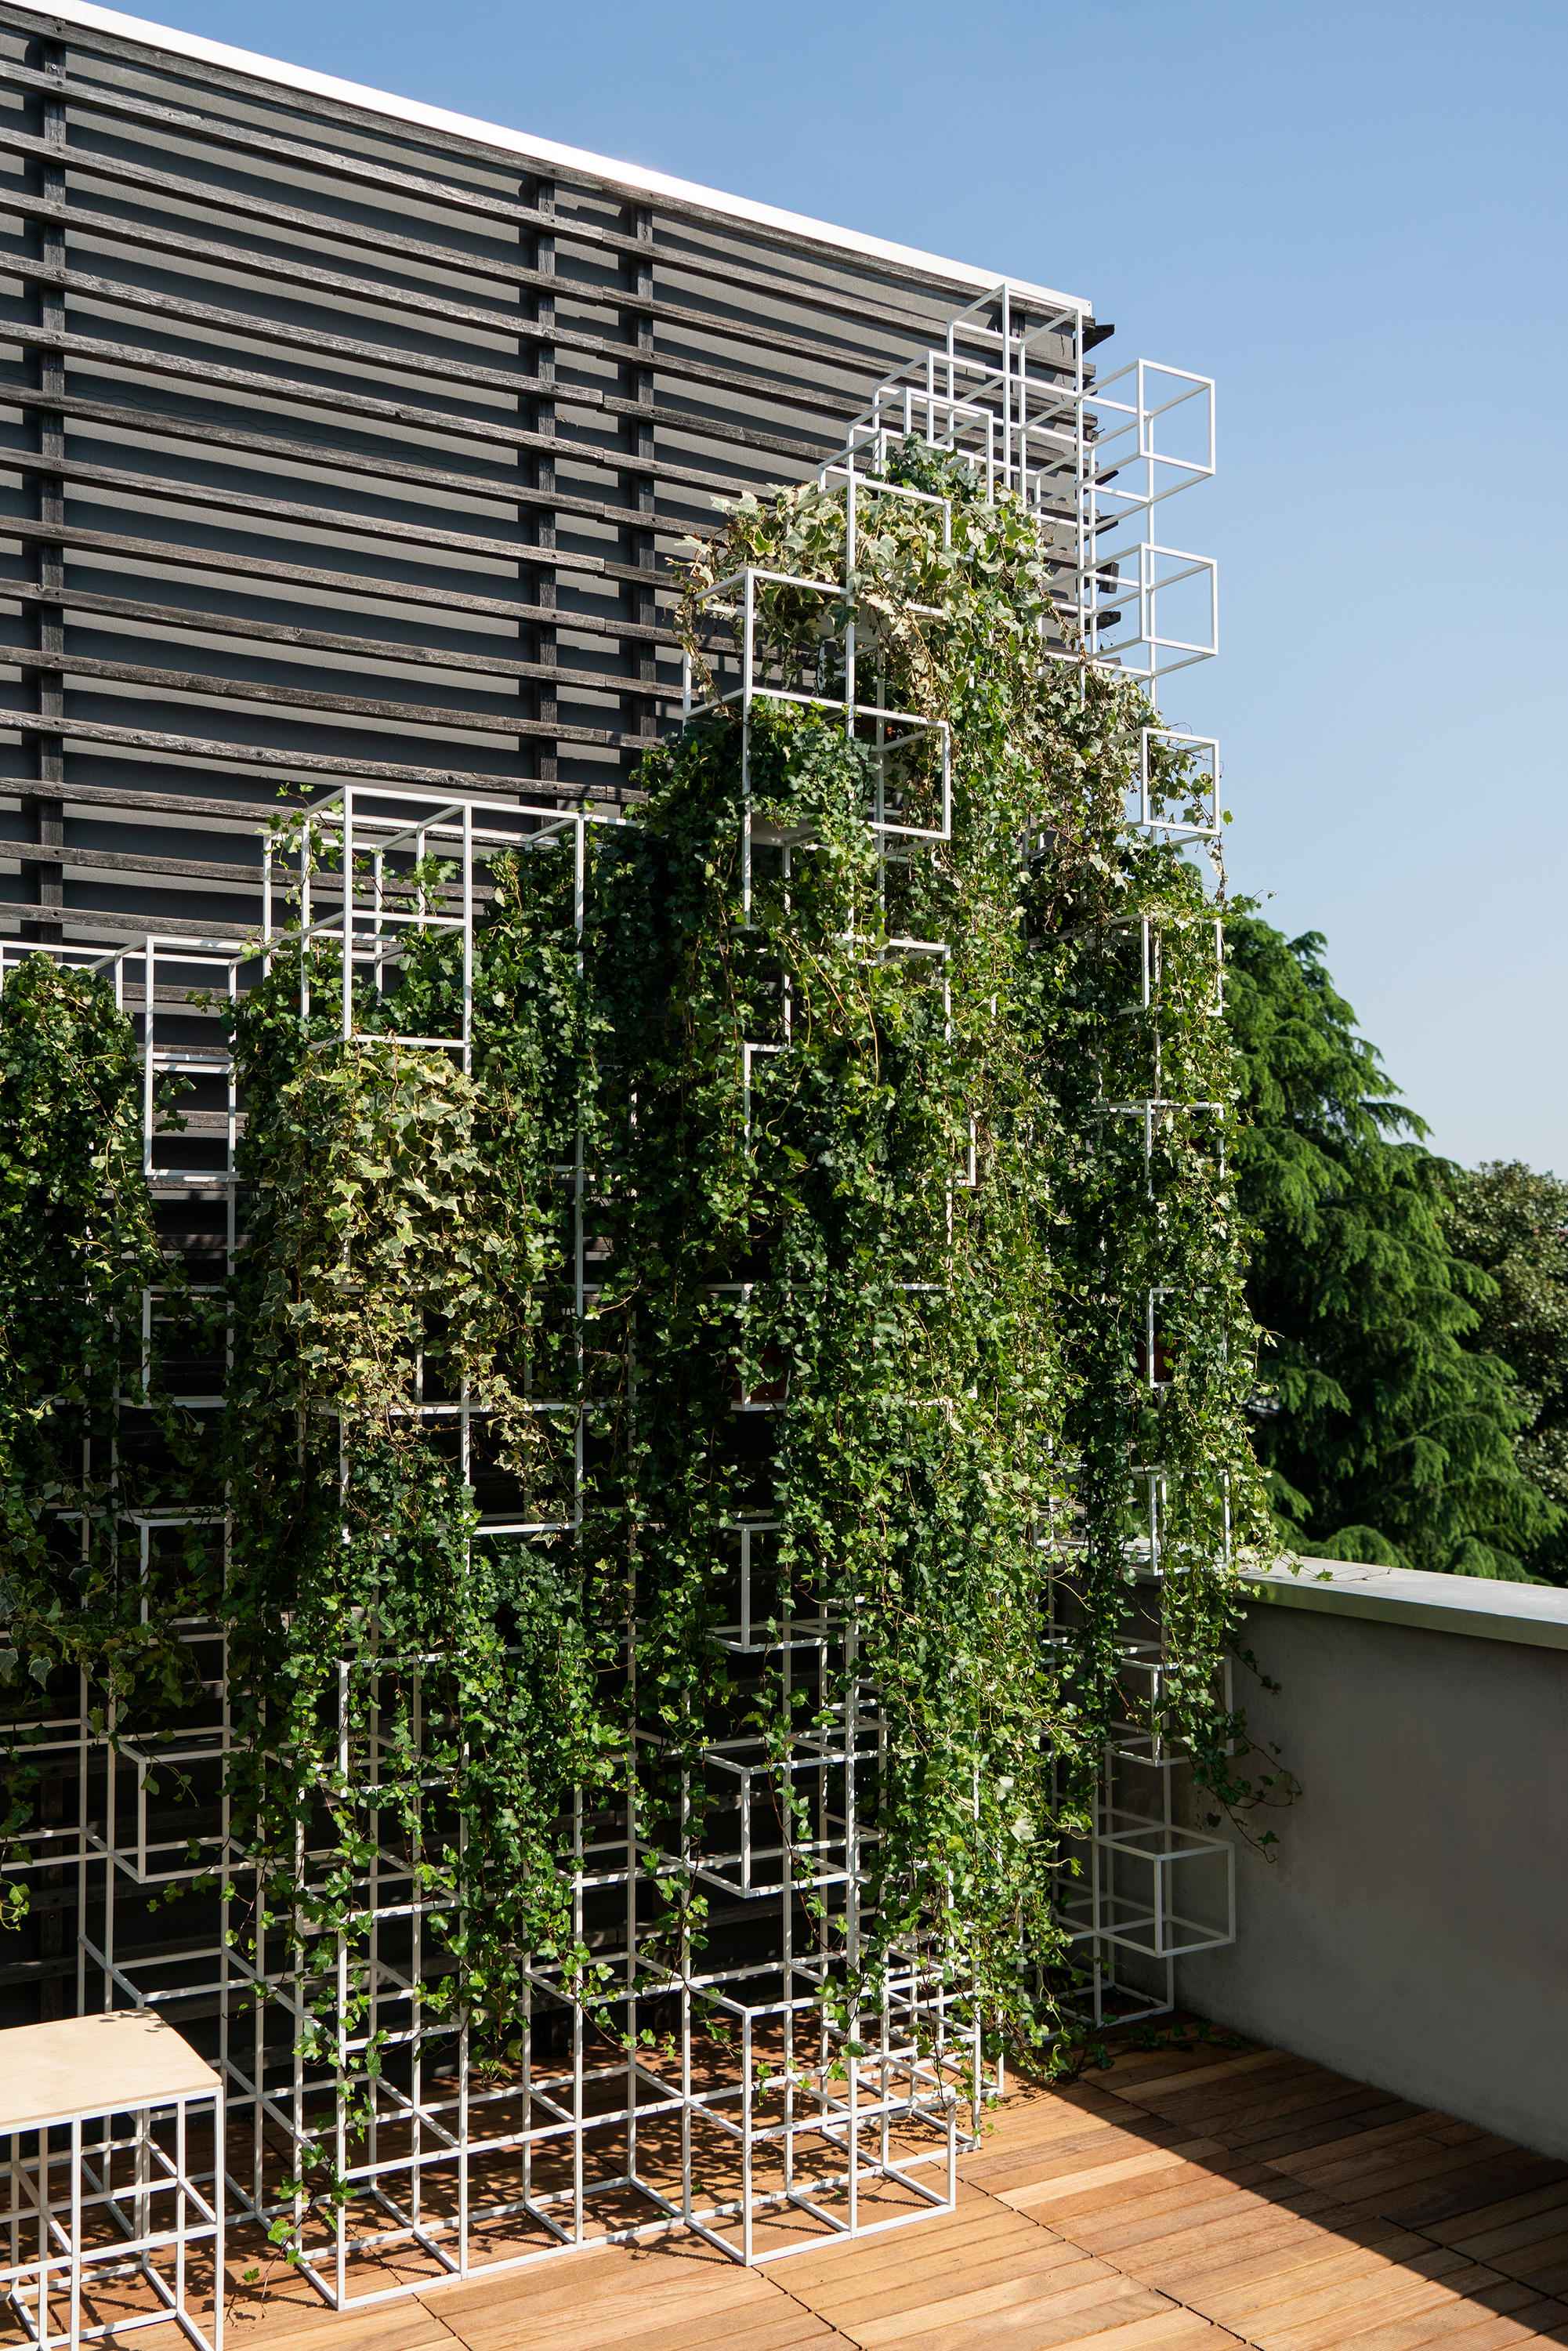 ipot modular system by ipot green facades planting supercake72 ipot